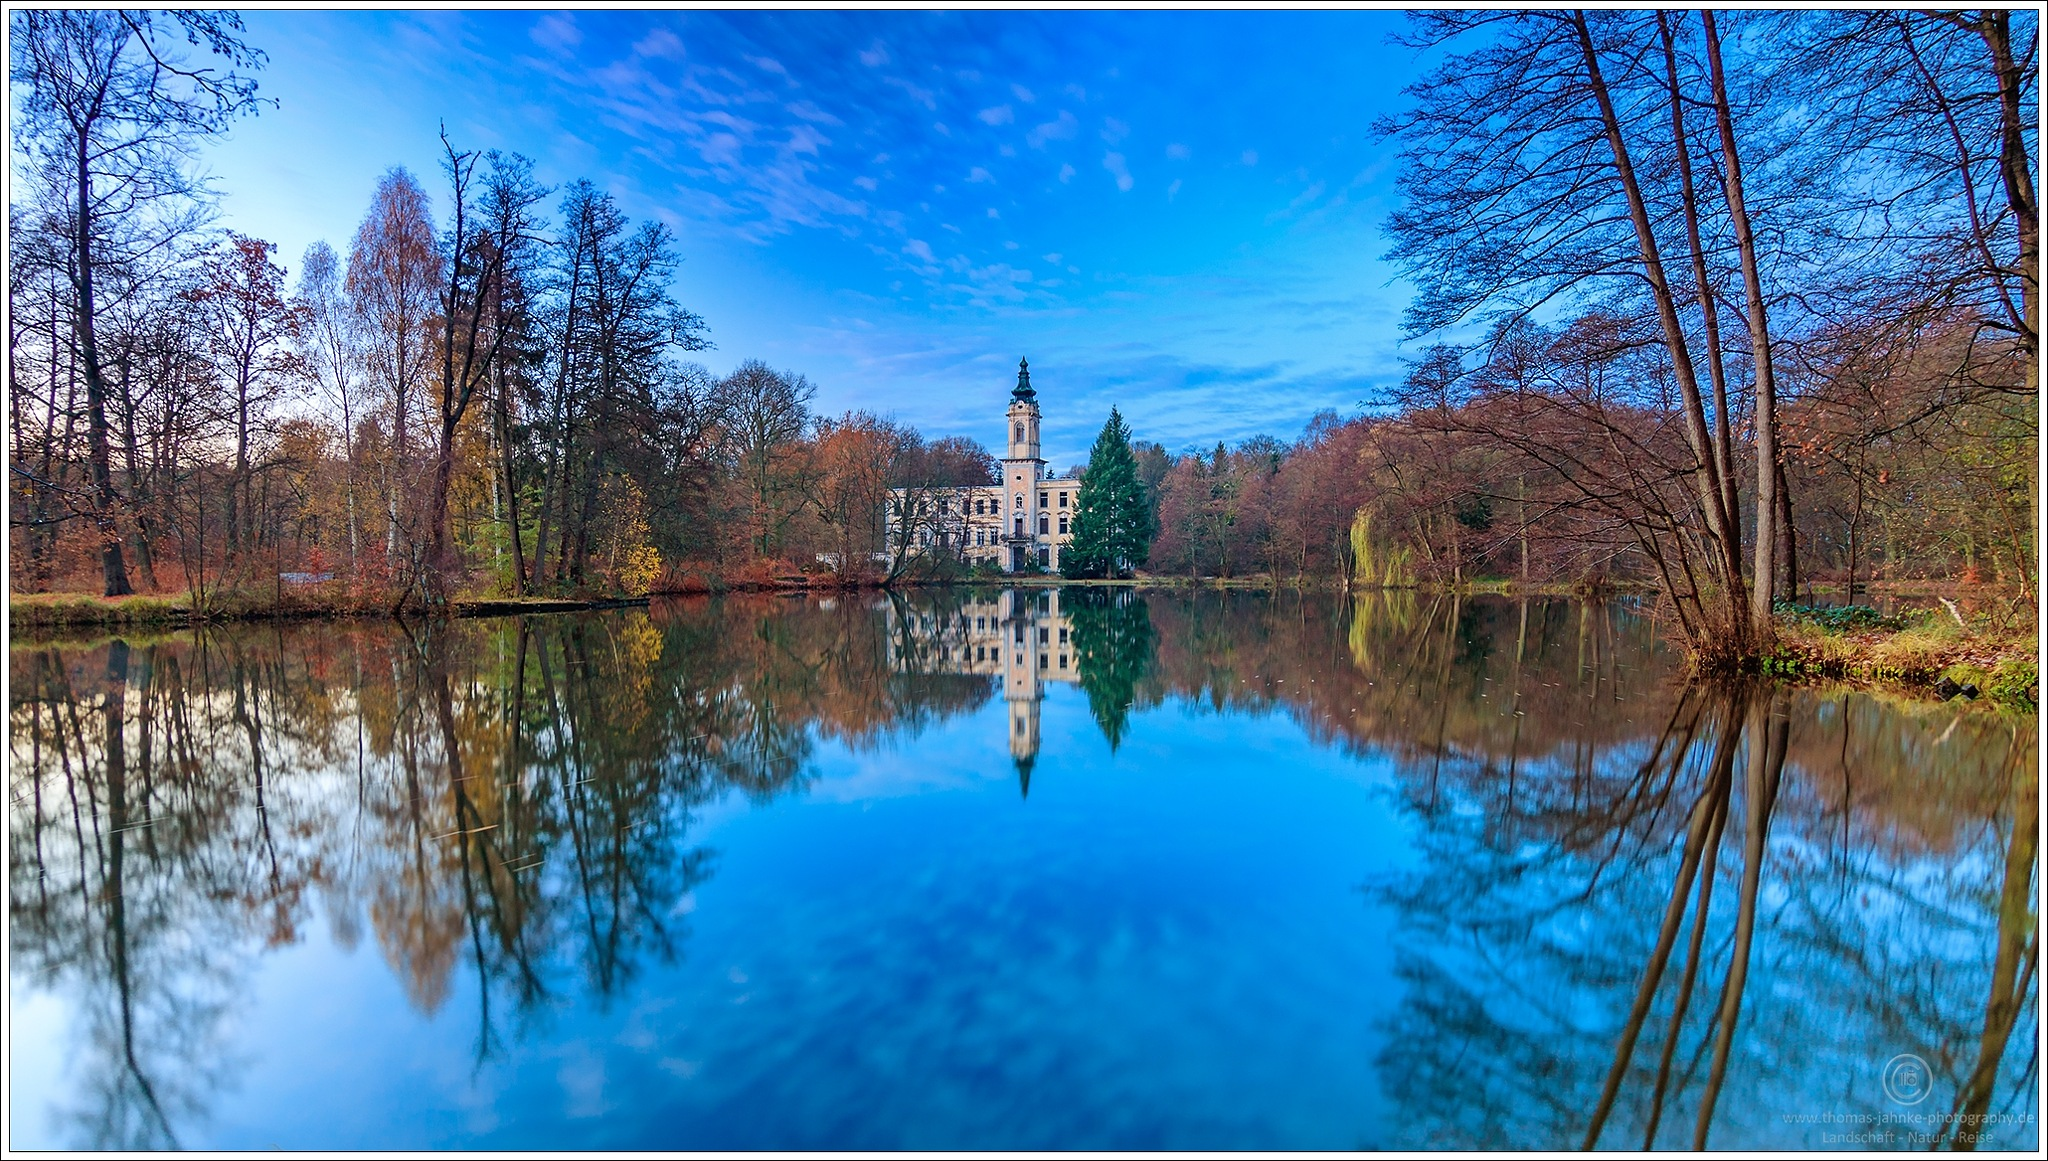 As mirrored castle by Thomas Jahnke